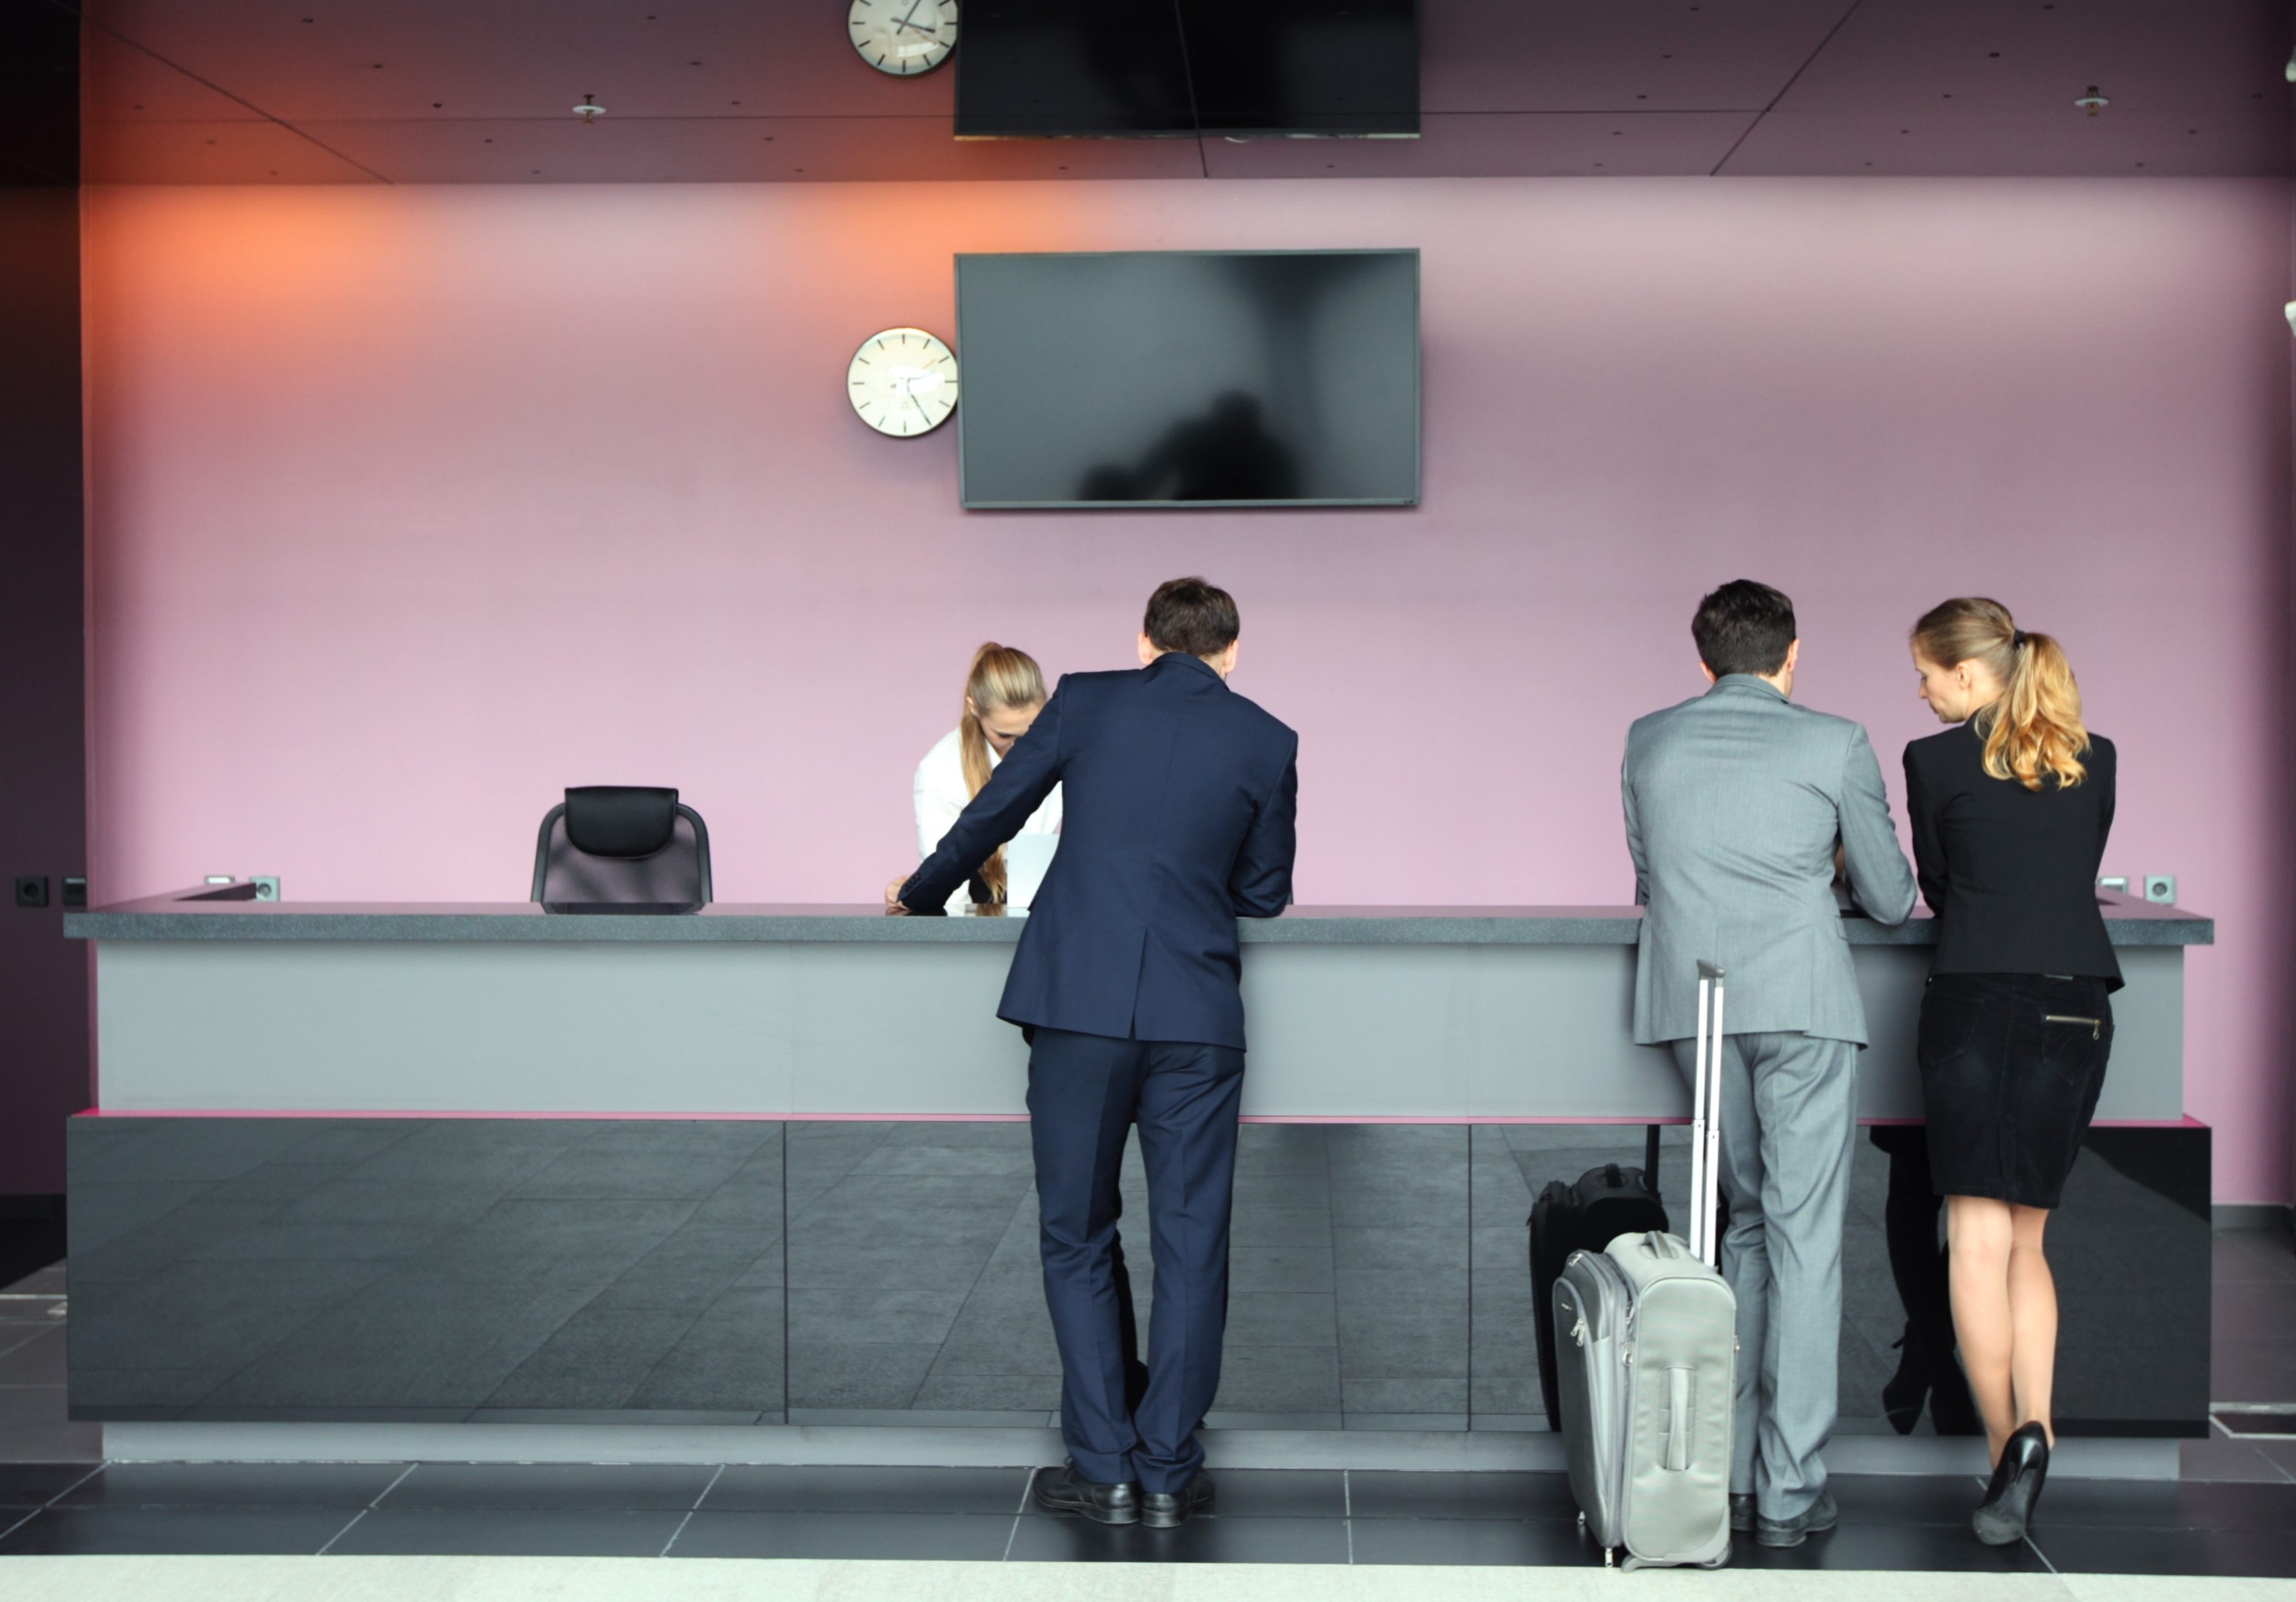 Business people passengers with suitcase waiting for check-in at airport